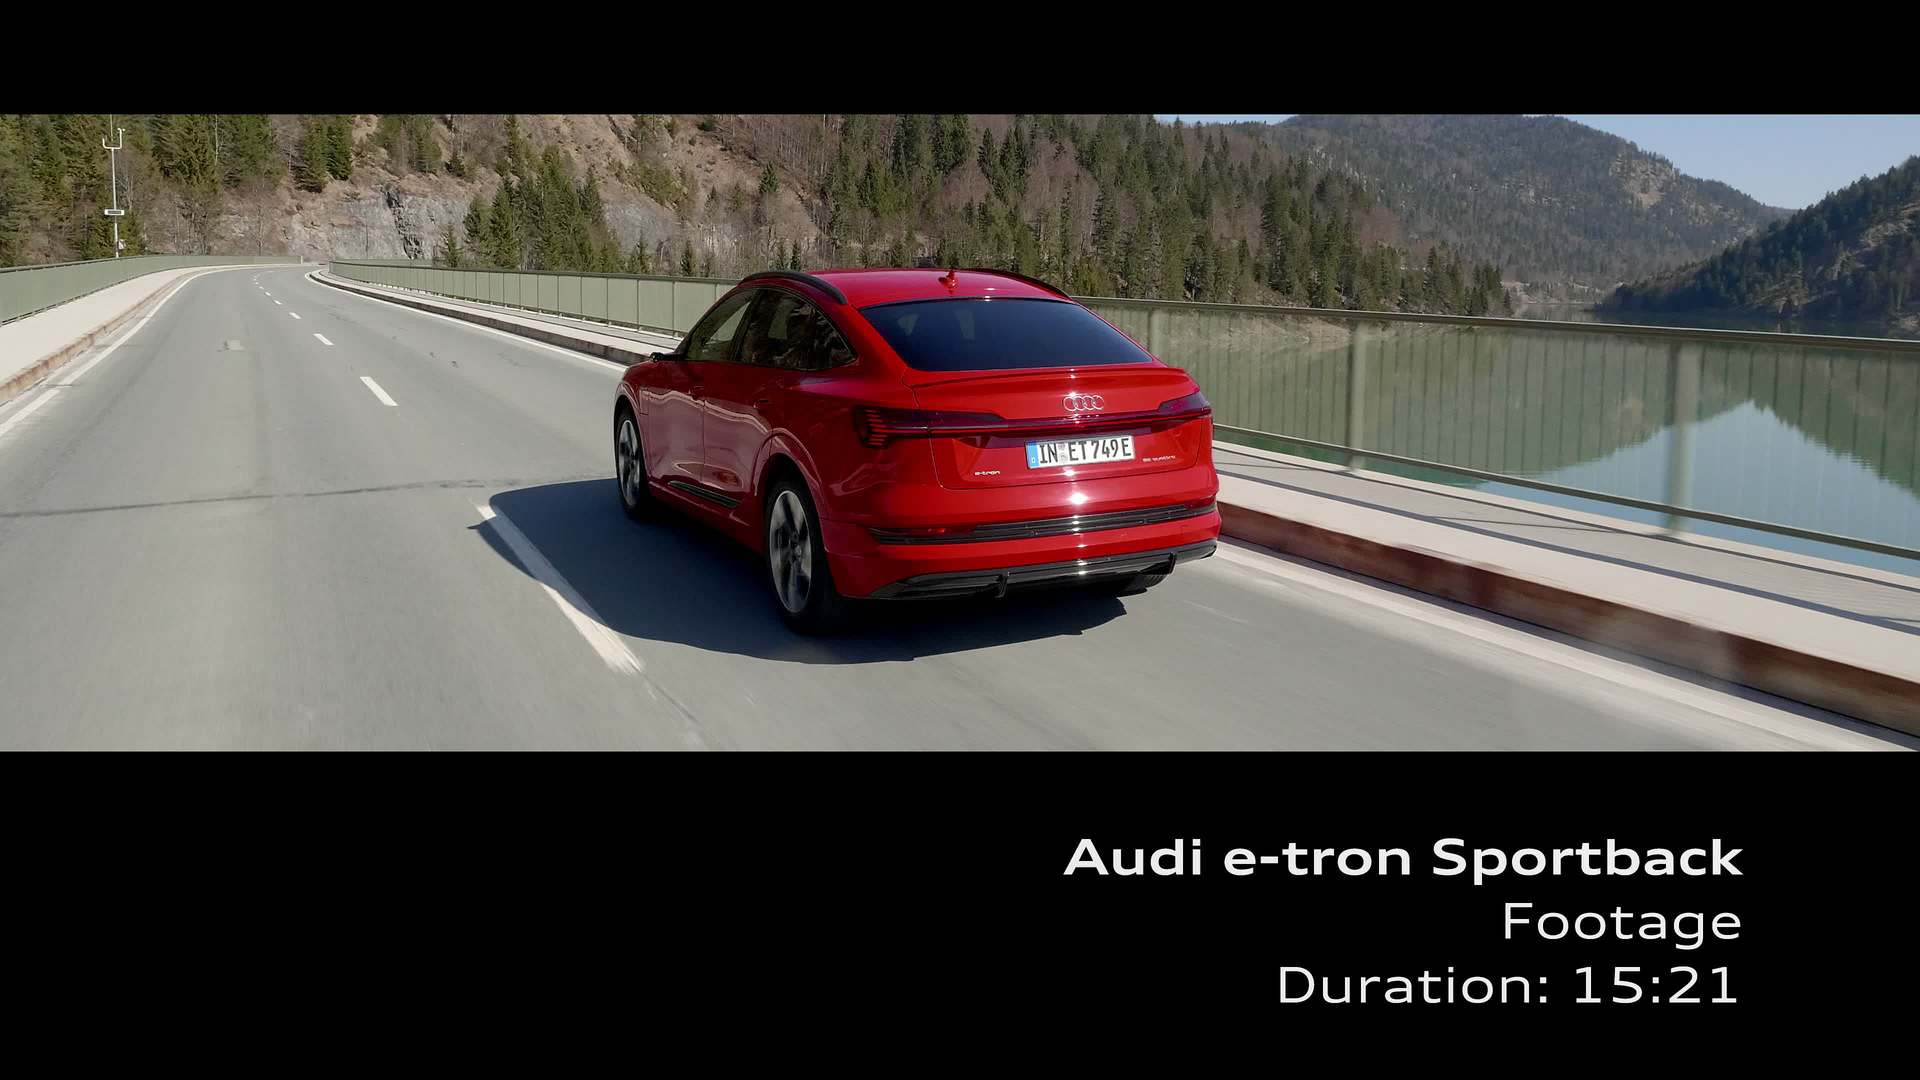 Footage: Audi e-tron Sportback Catalunya red metallic